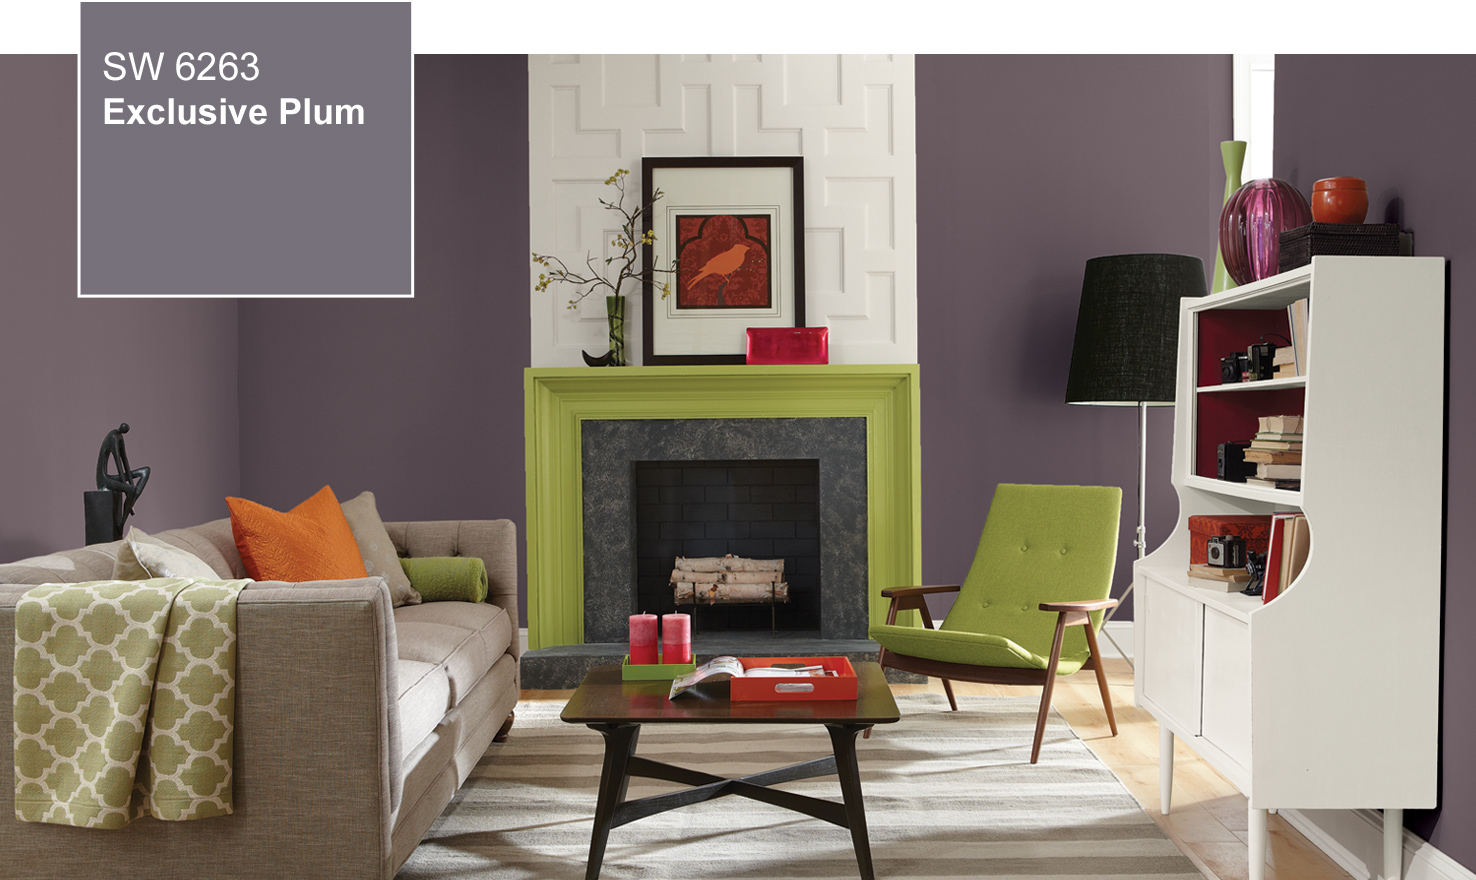 paint colors abr interior design dallas interior design dallas